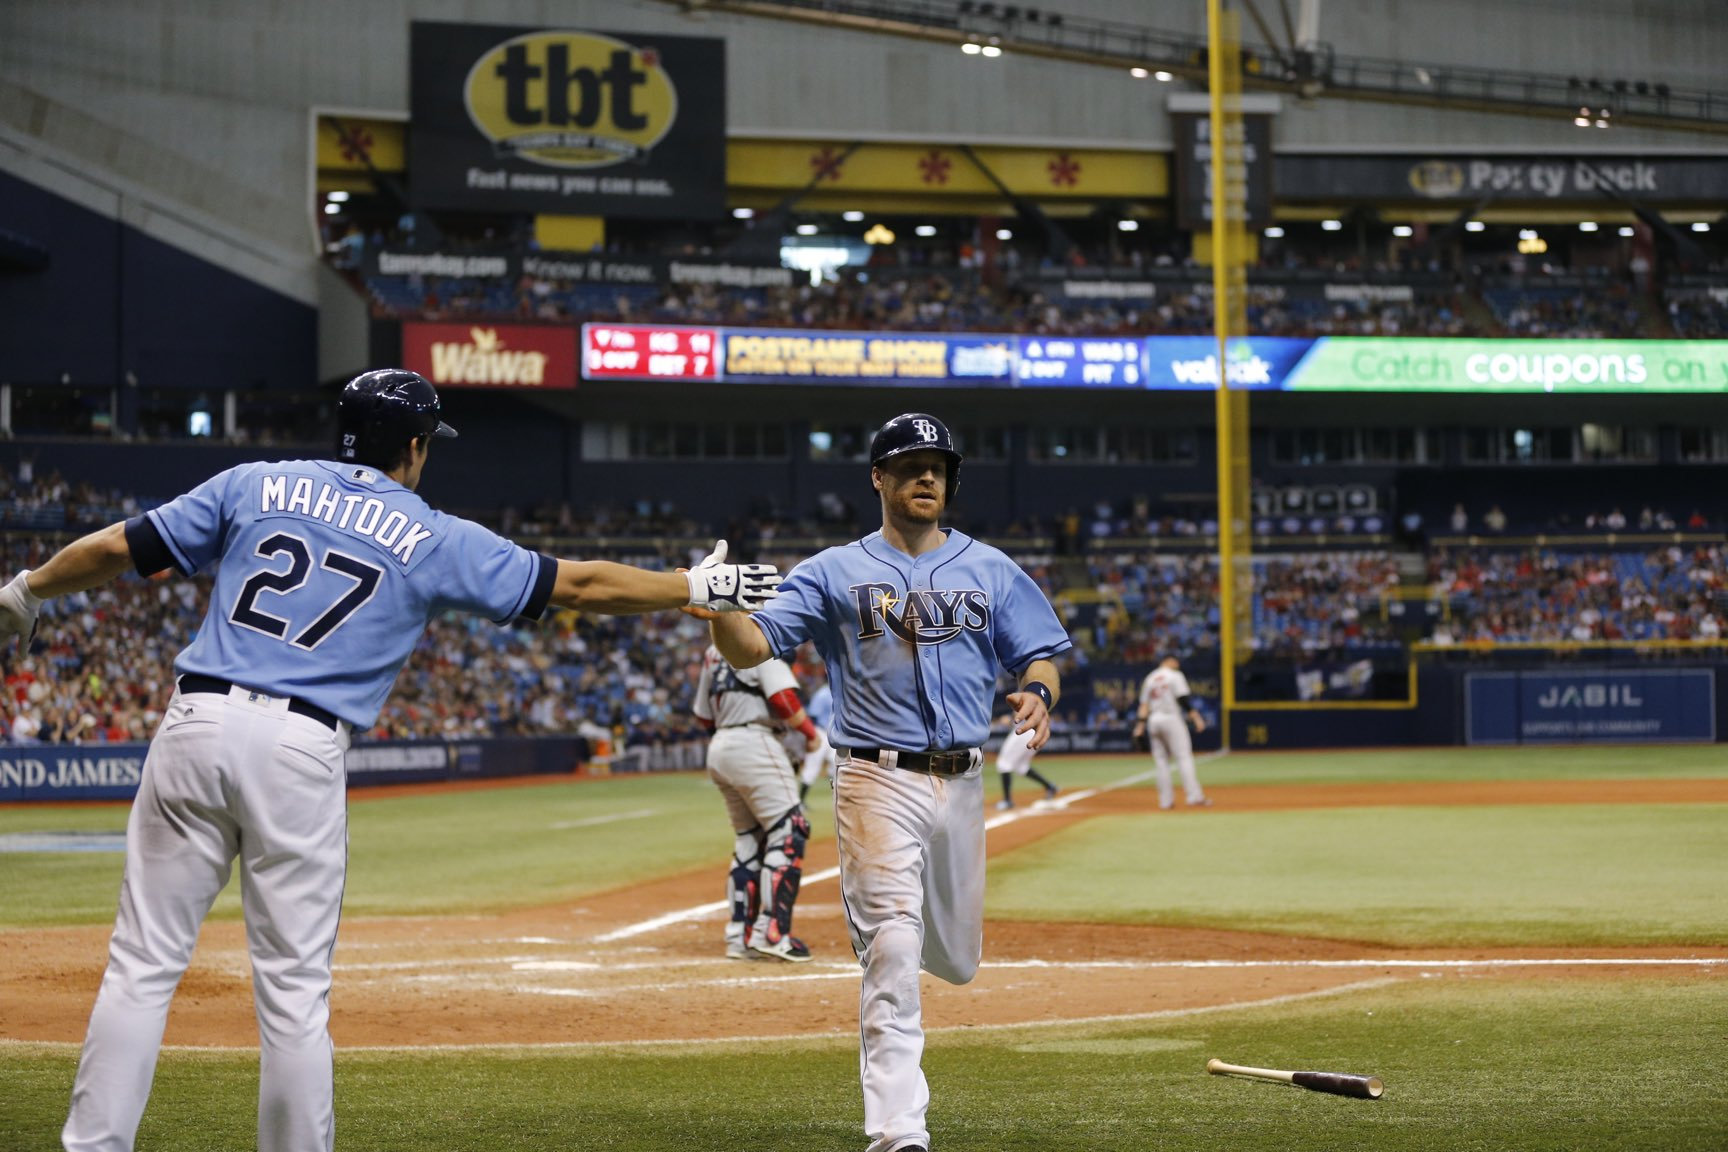 The Rays tied the game in the eighth, yet lost in the 10th of Sunday's home season finale against the Red Sox. (Photo Credit: Tampa Bay Rays)